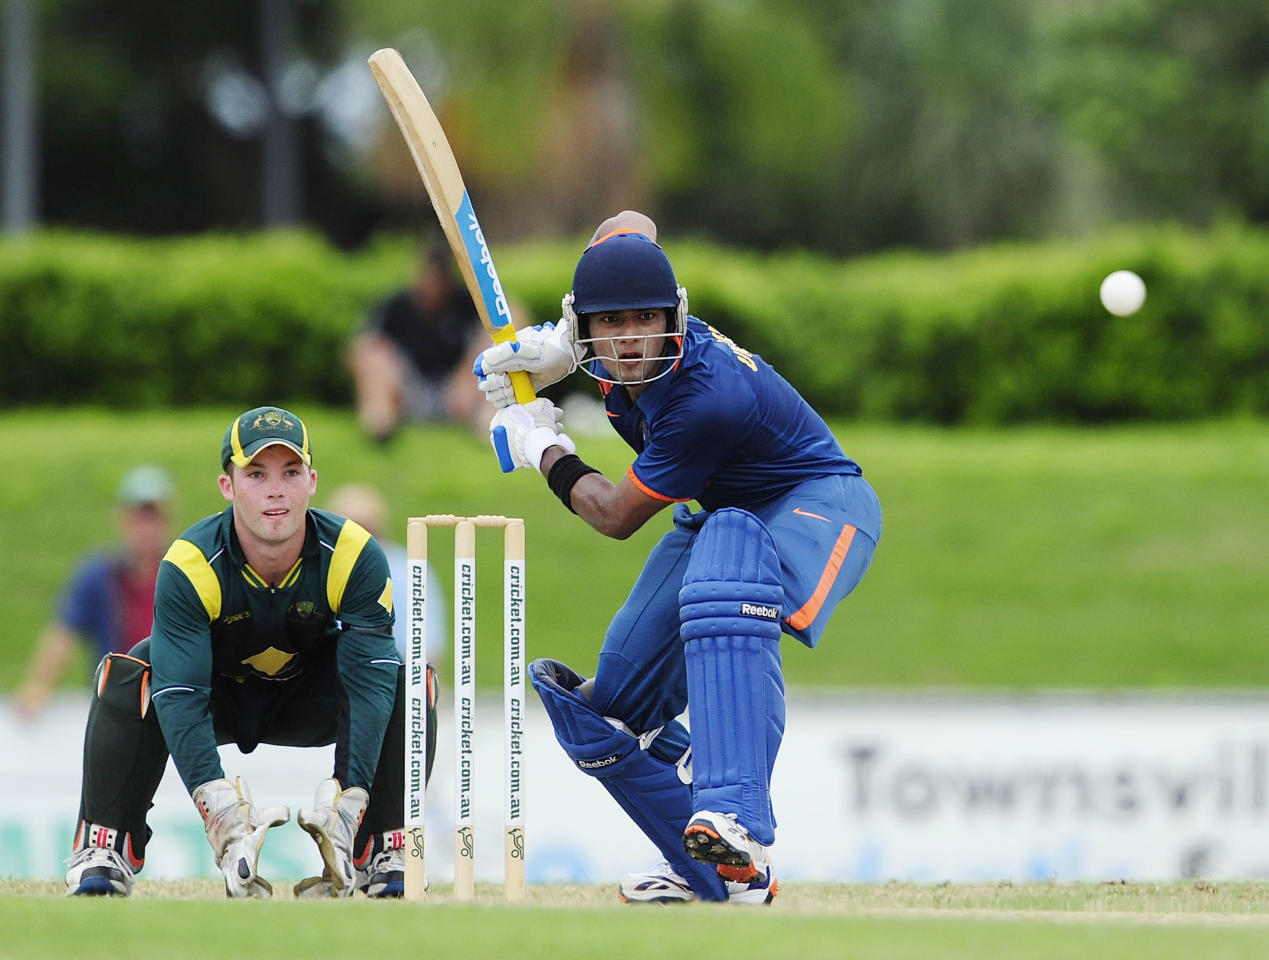 TOWNSVILLE, AUSTRALIA - APRIL 15:  Unmukt Chand of India bats in font of James Peirson of Australia during the match between Australia and India on day five of the U19 International Quad Series at Tony Ireland Stadium on April 15, 2012 in Townsville, Australia.  (Photo by Ian Hitchcock/Getty Images)